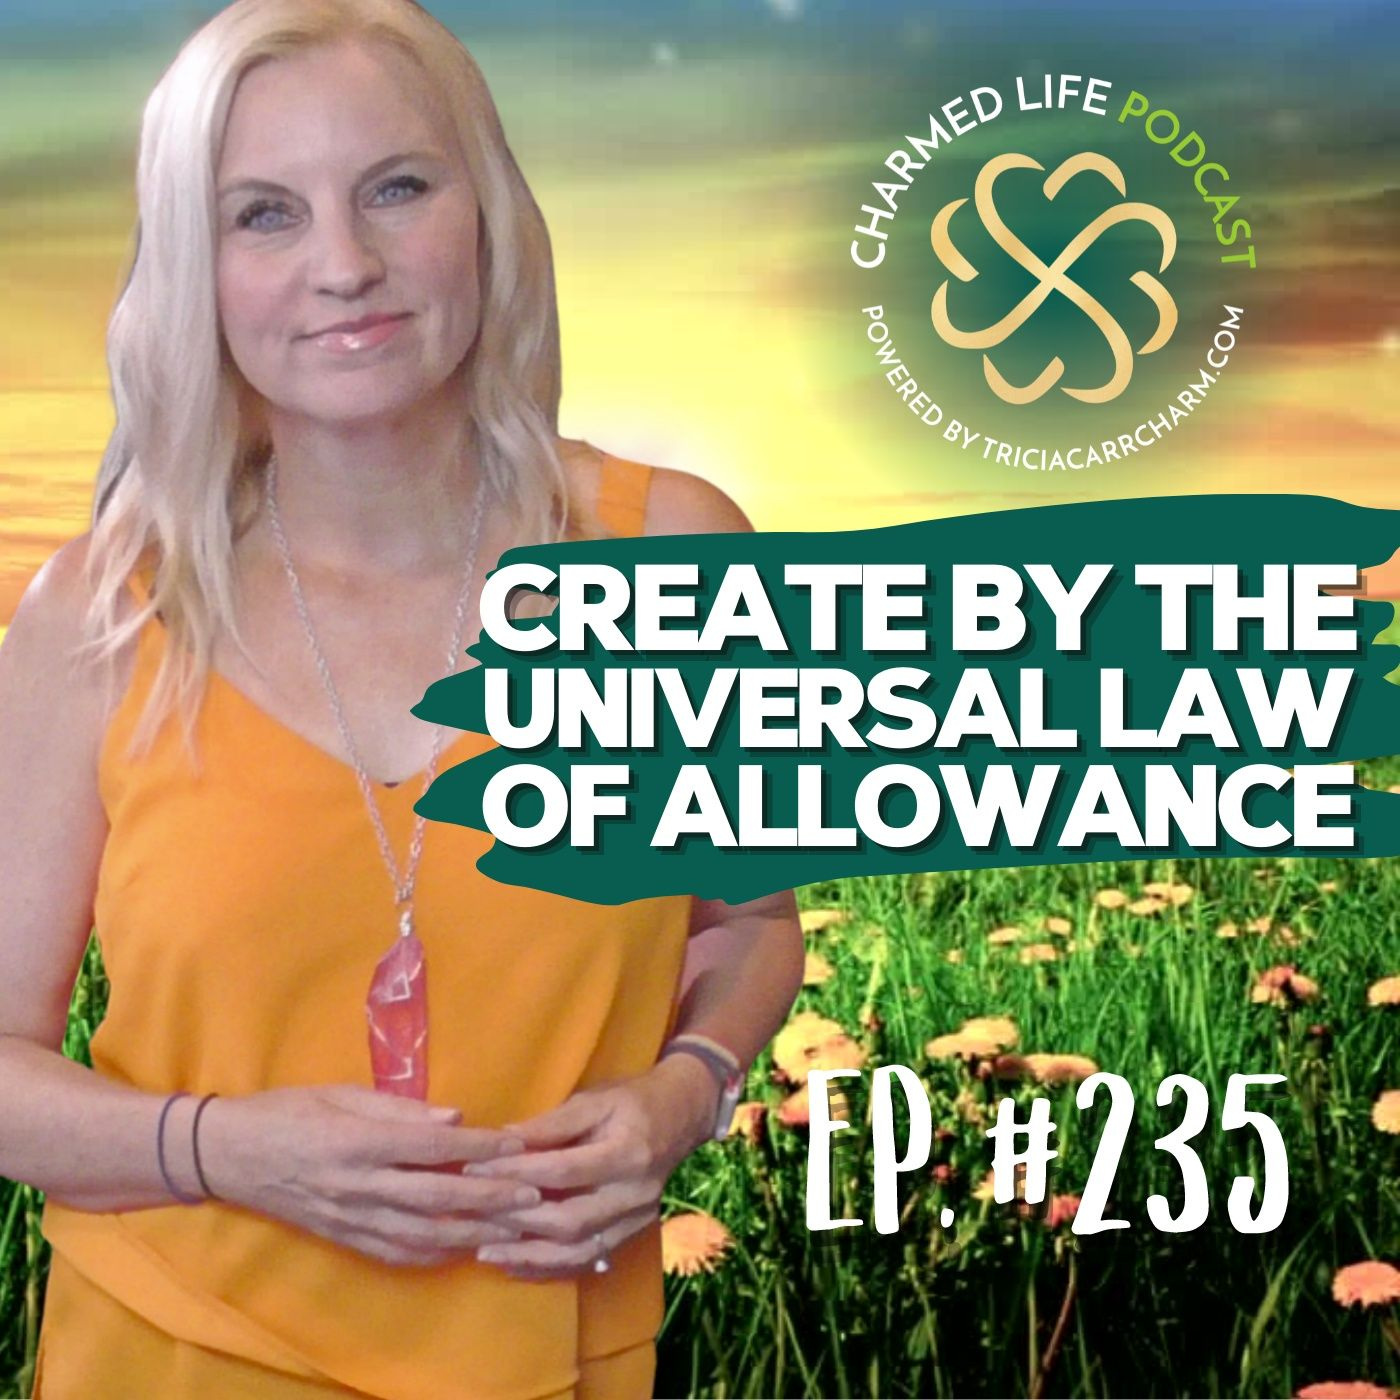 235: The Universal Law of Allowance  Let There Be Light